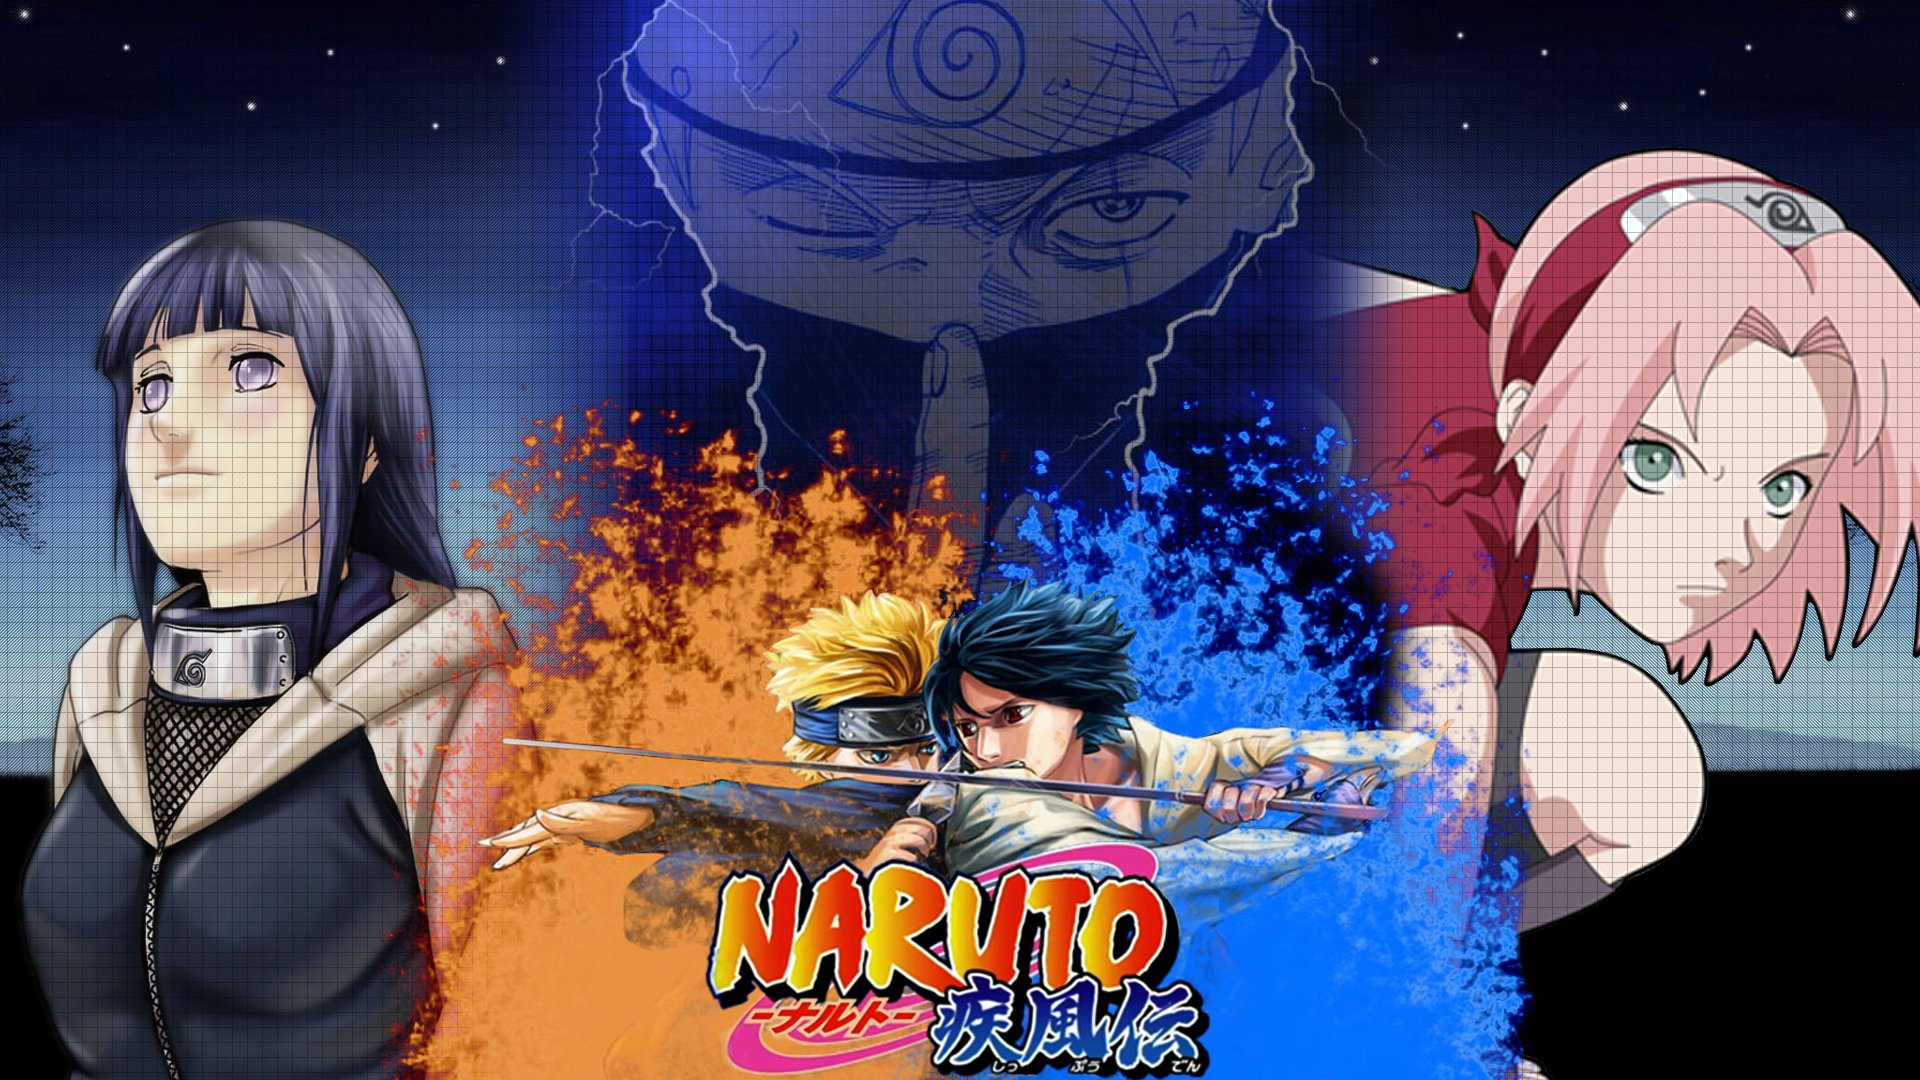 Download-free-Nokia-N-itachi-uchiha-themes-most-downloaded-wallpaper-wp3605018-1